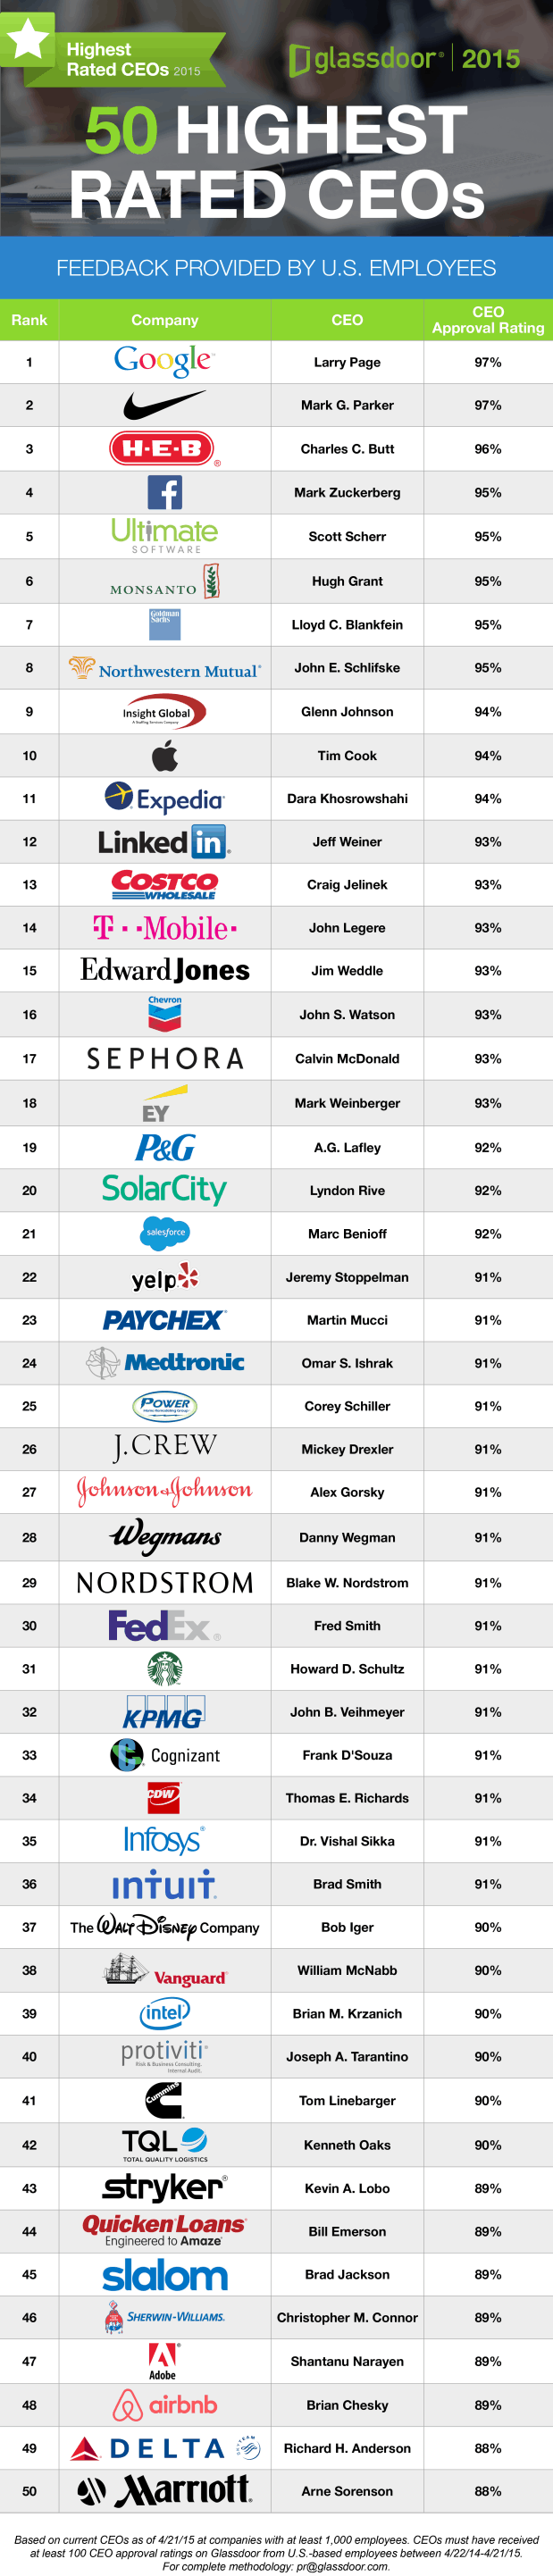 top-50-ceos-large-companies-u-s-4